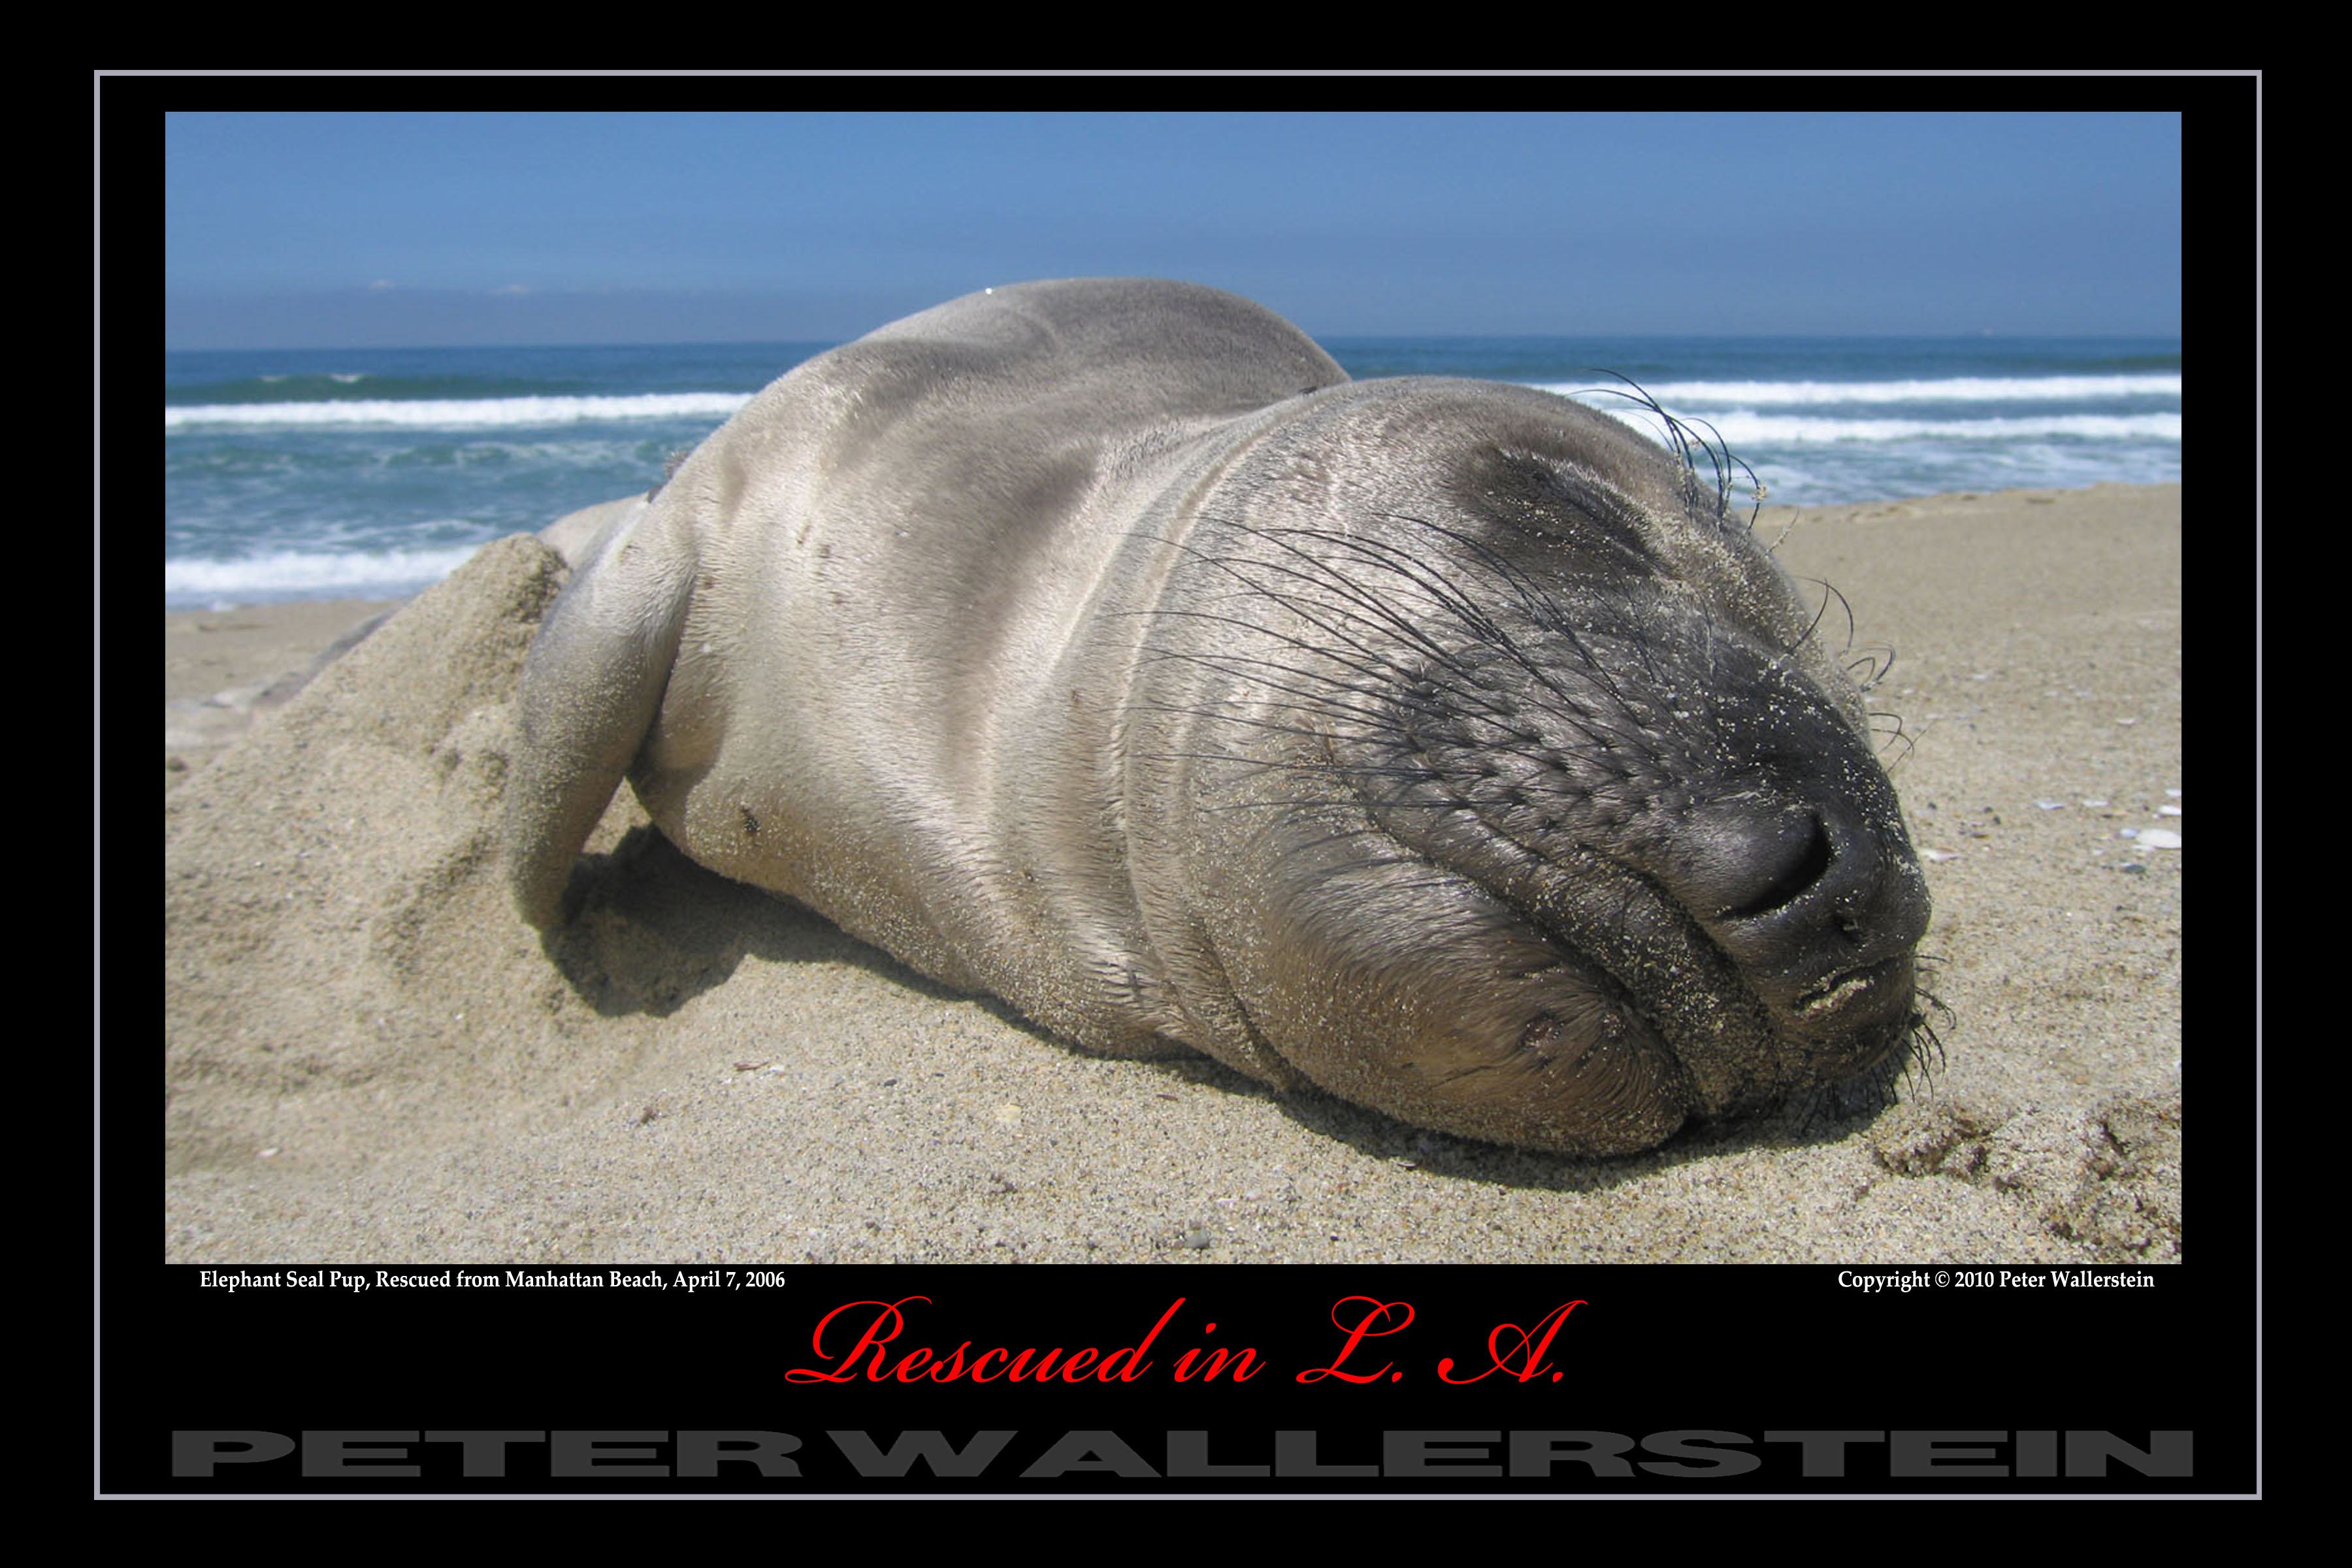 Elephant Seal Pup Sunning